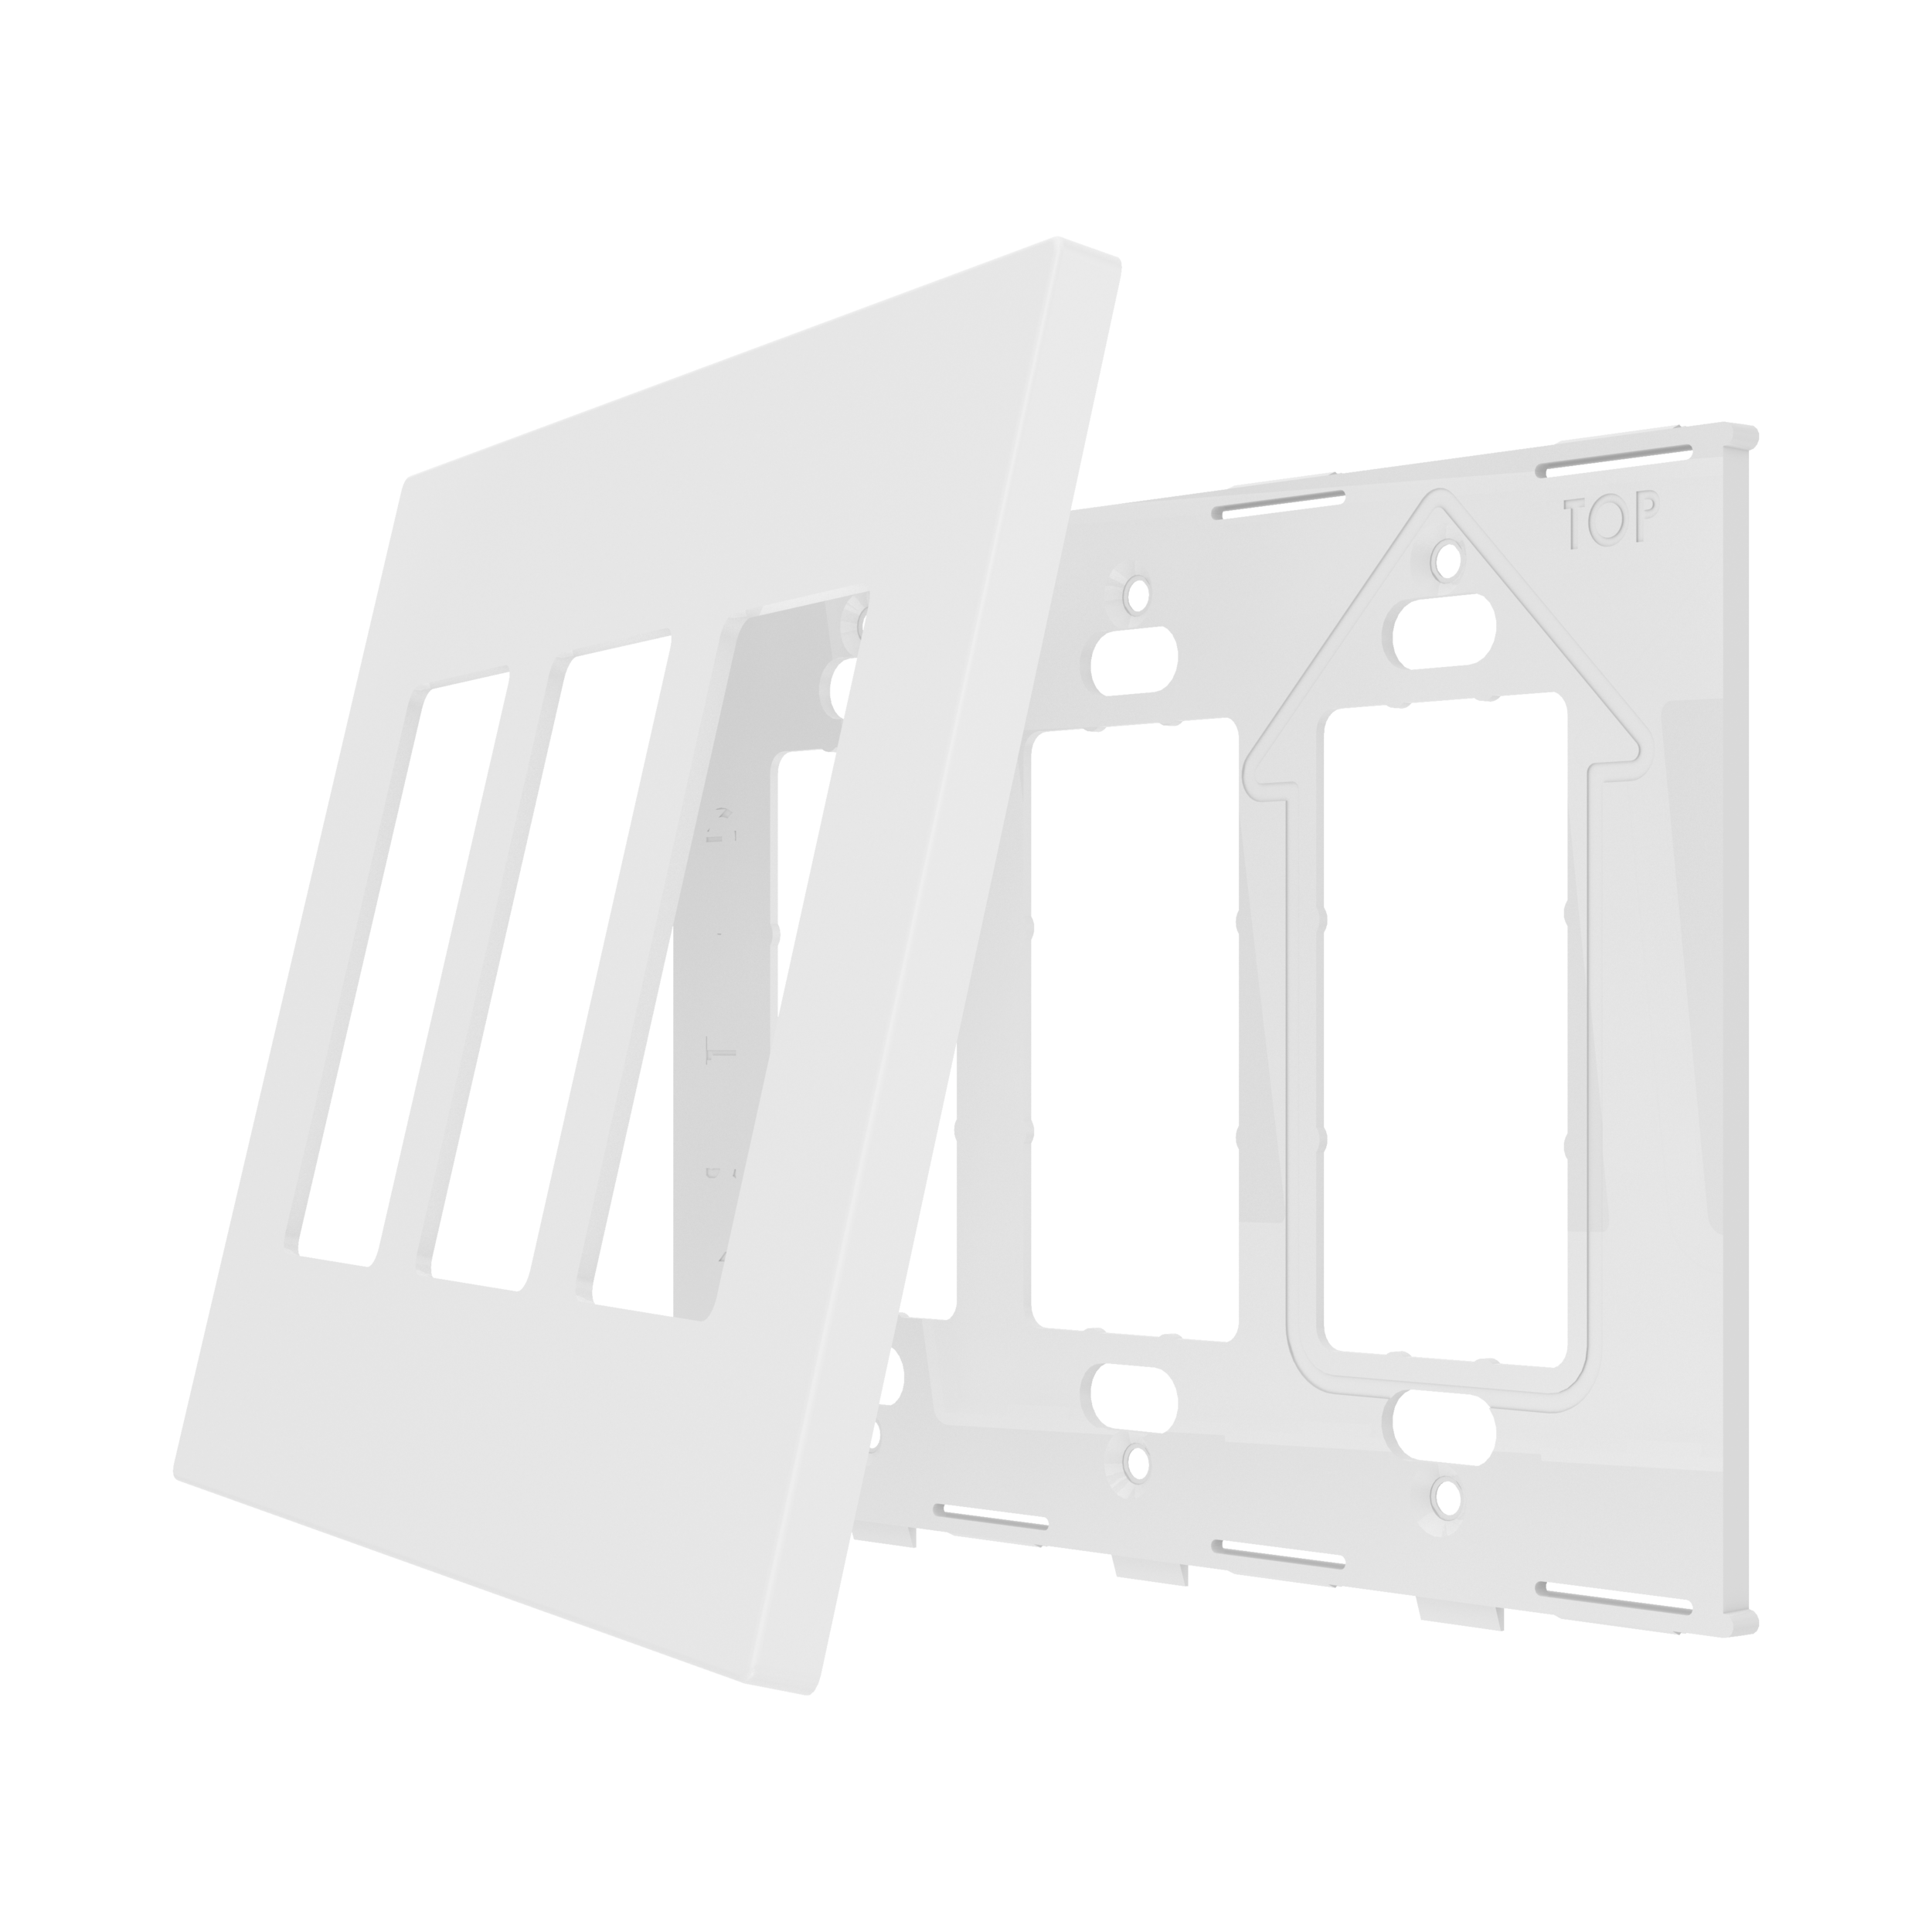 Wall Plate (3-Gang) 03.png